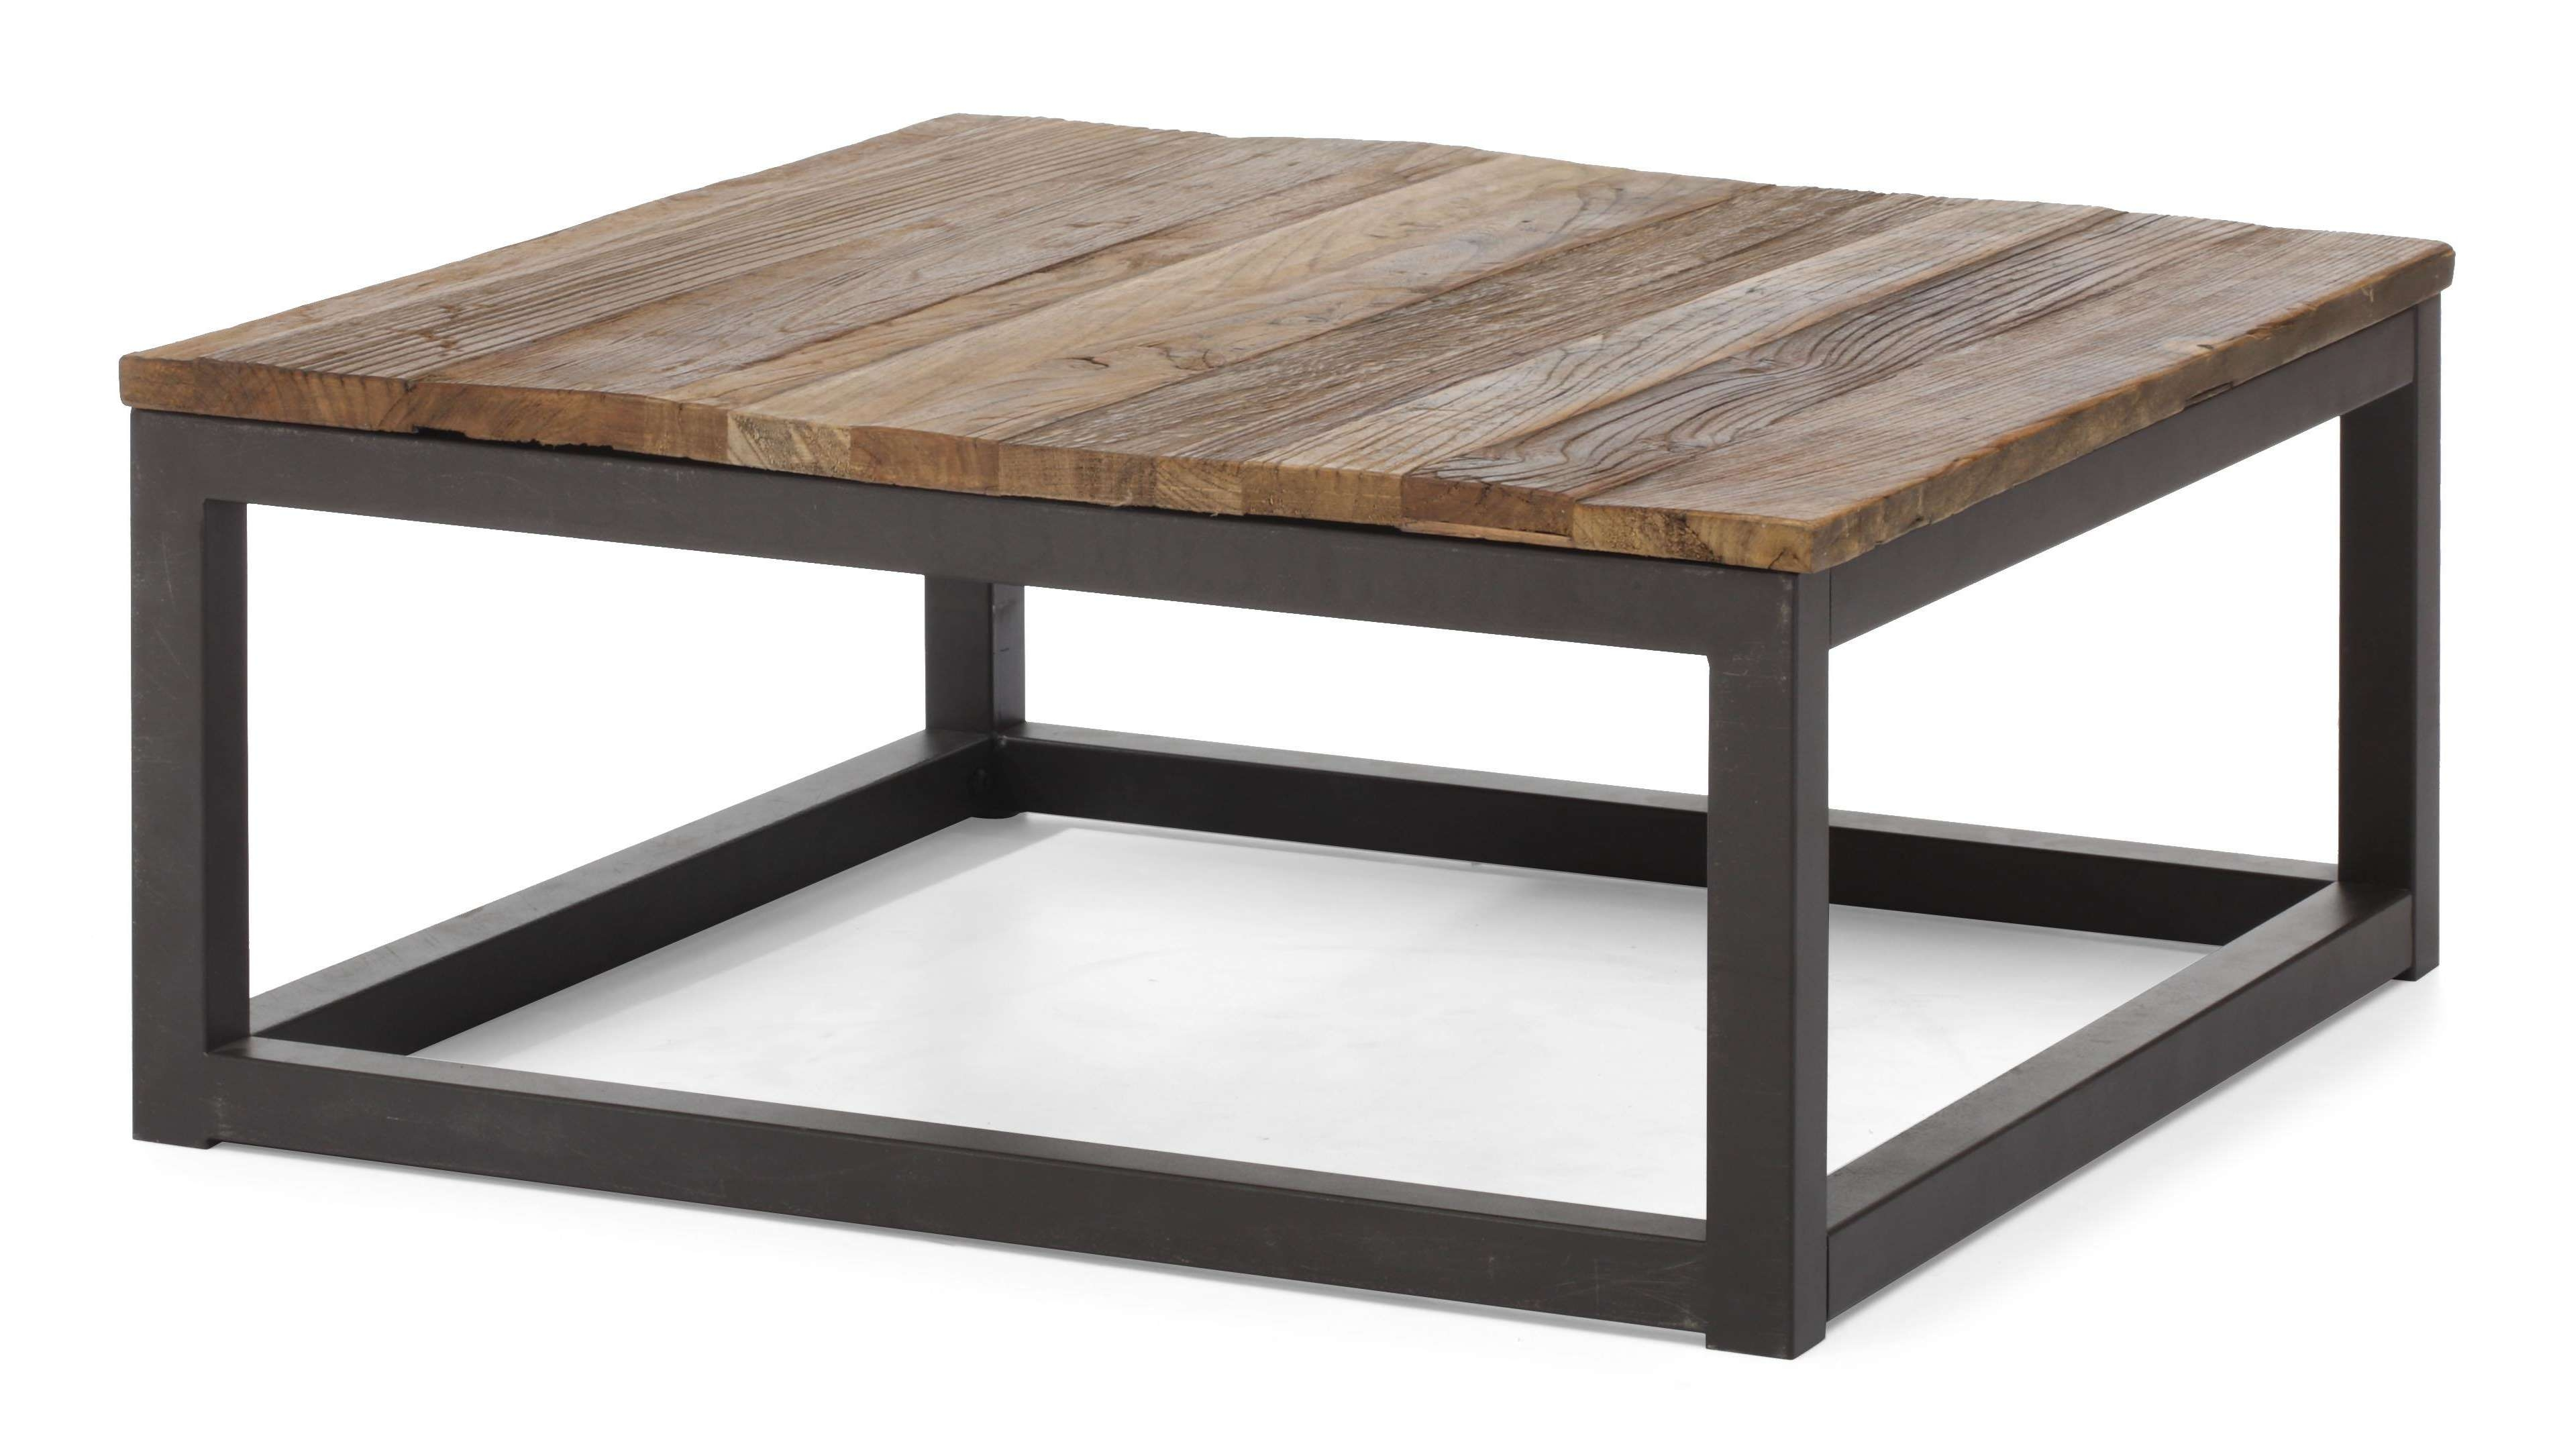 Coffee Tables Ideas: Awesome Cheap Wood Coffee Table Sets Living Regarding Most Popular Cheap Wood Coffee Tables (View 8 of 20)